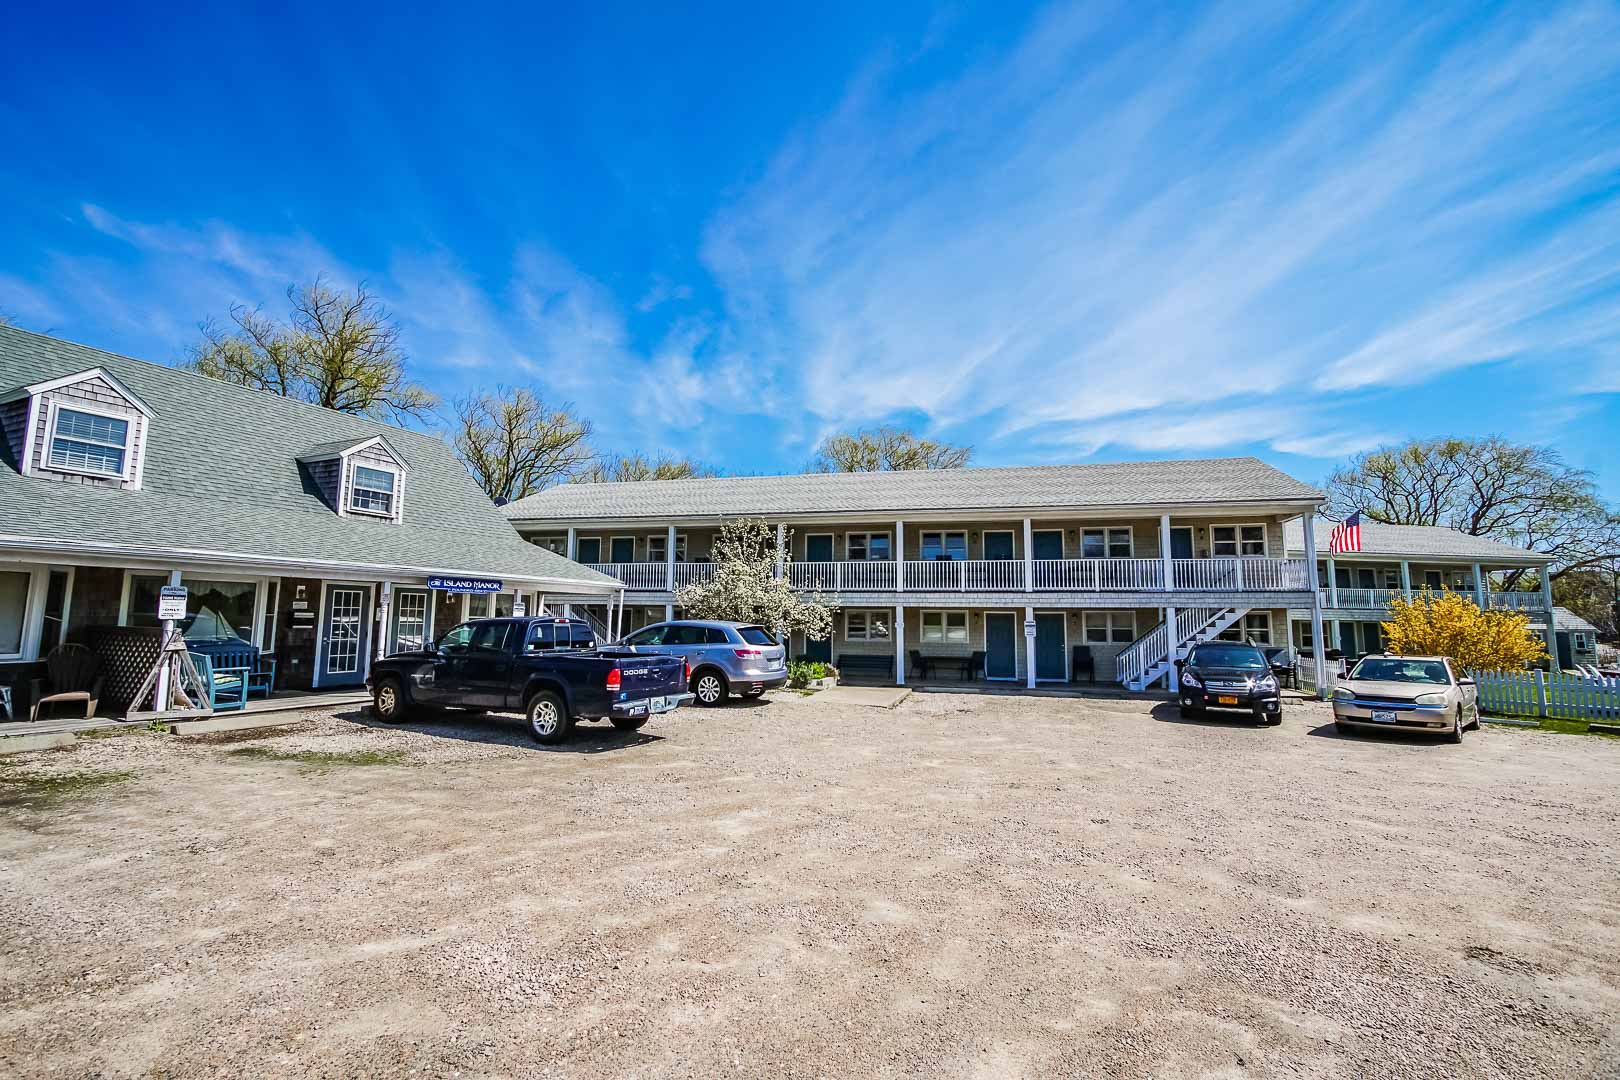 Clear skies and welcoming resort entrance at VRI's Island Manor Resort in Rhode Island.